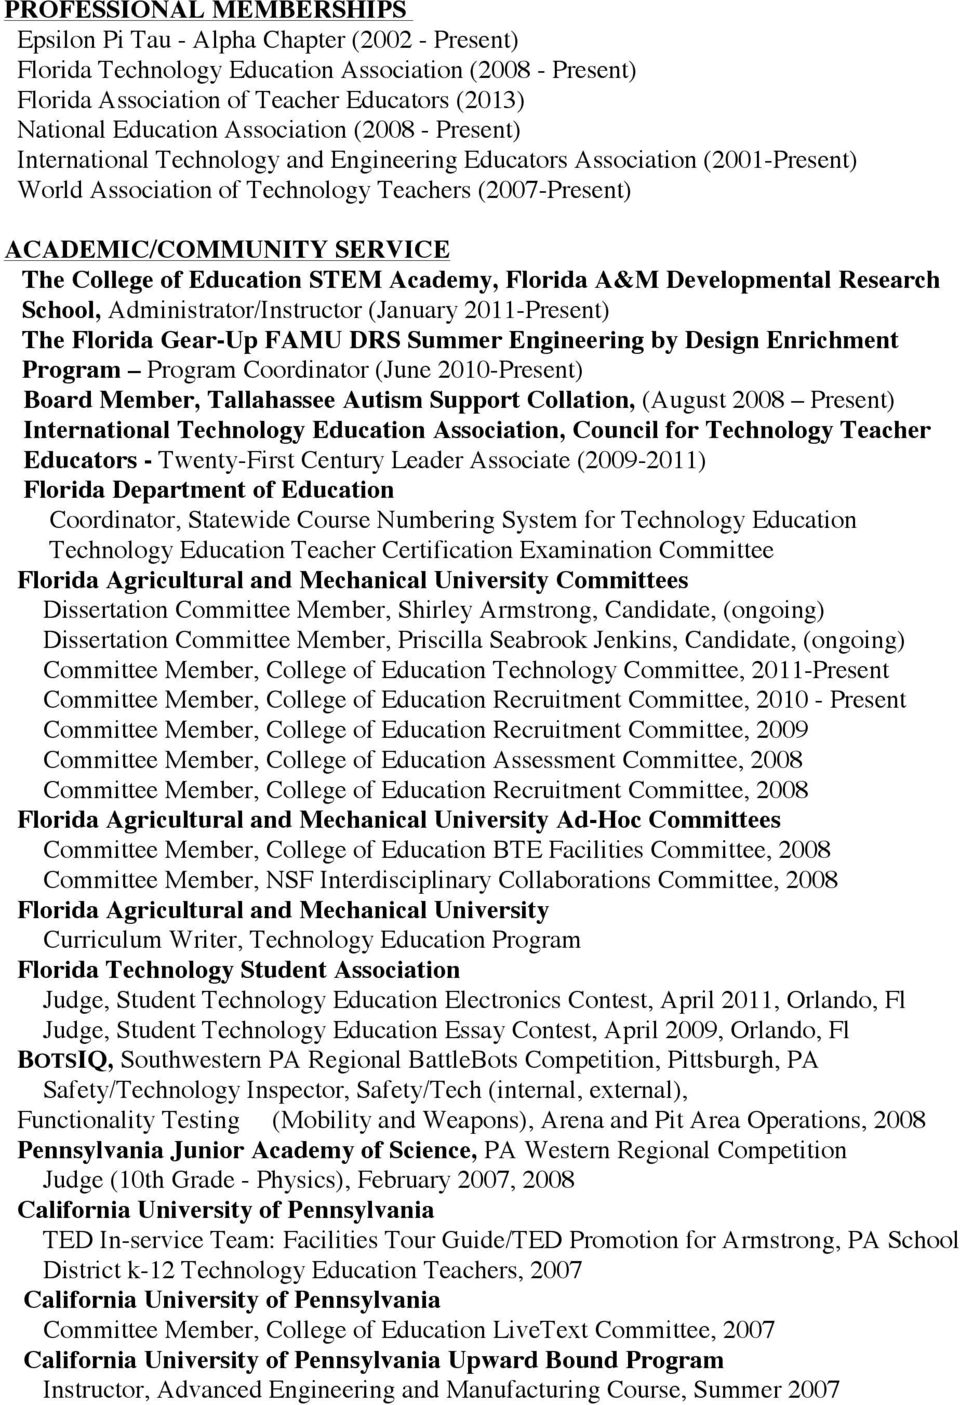 College of Education STEM Academy, Florida A&M Developmental Research School, Administrator/Instructor (January 2011-Present) The Florida Gear-Up FAMU DRS Summer Engineering by Design Enrichment